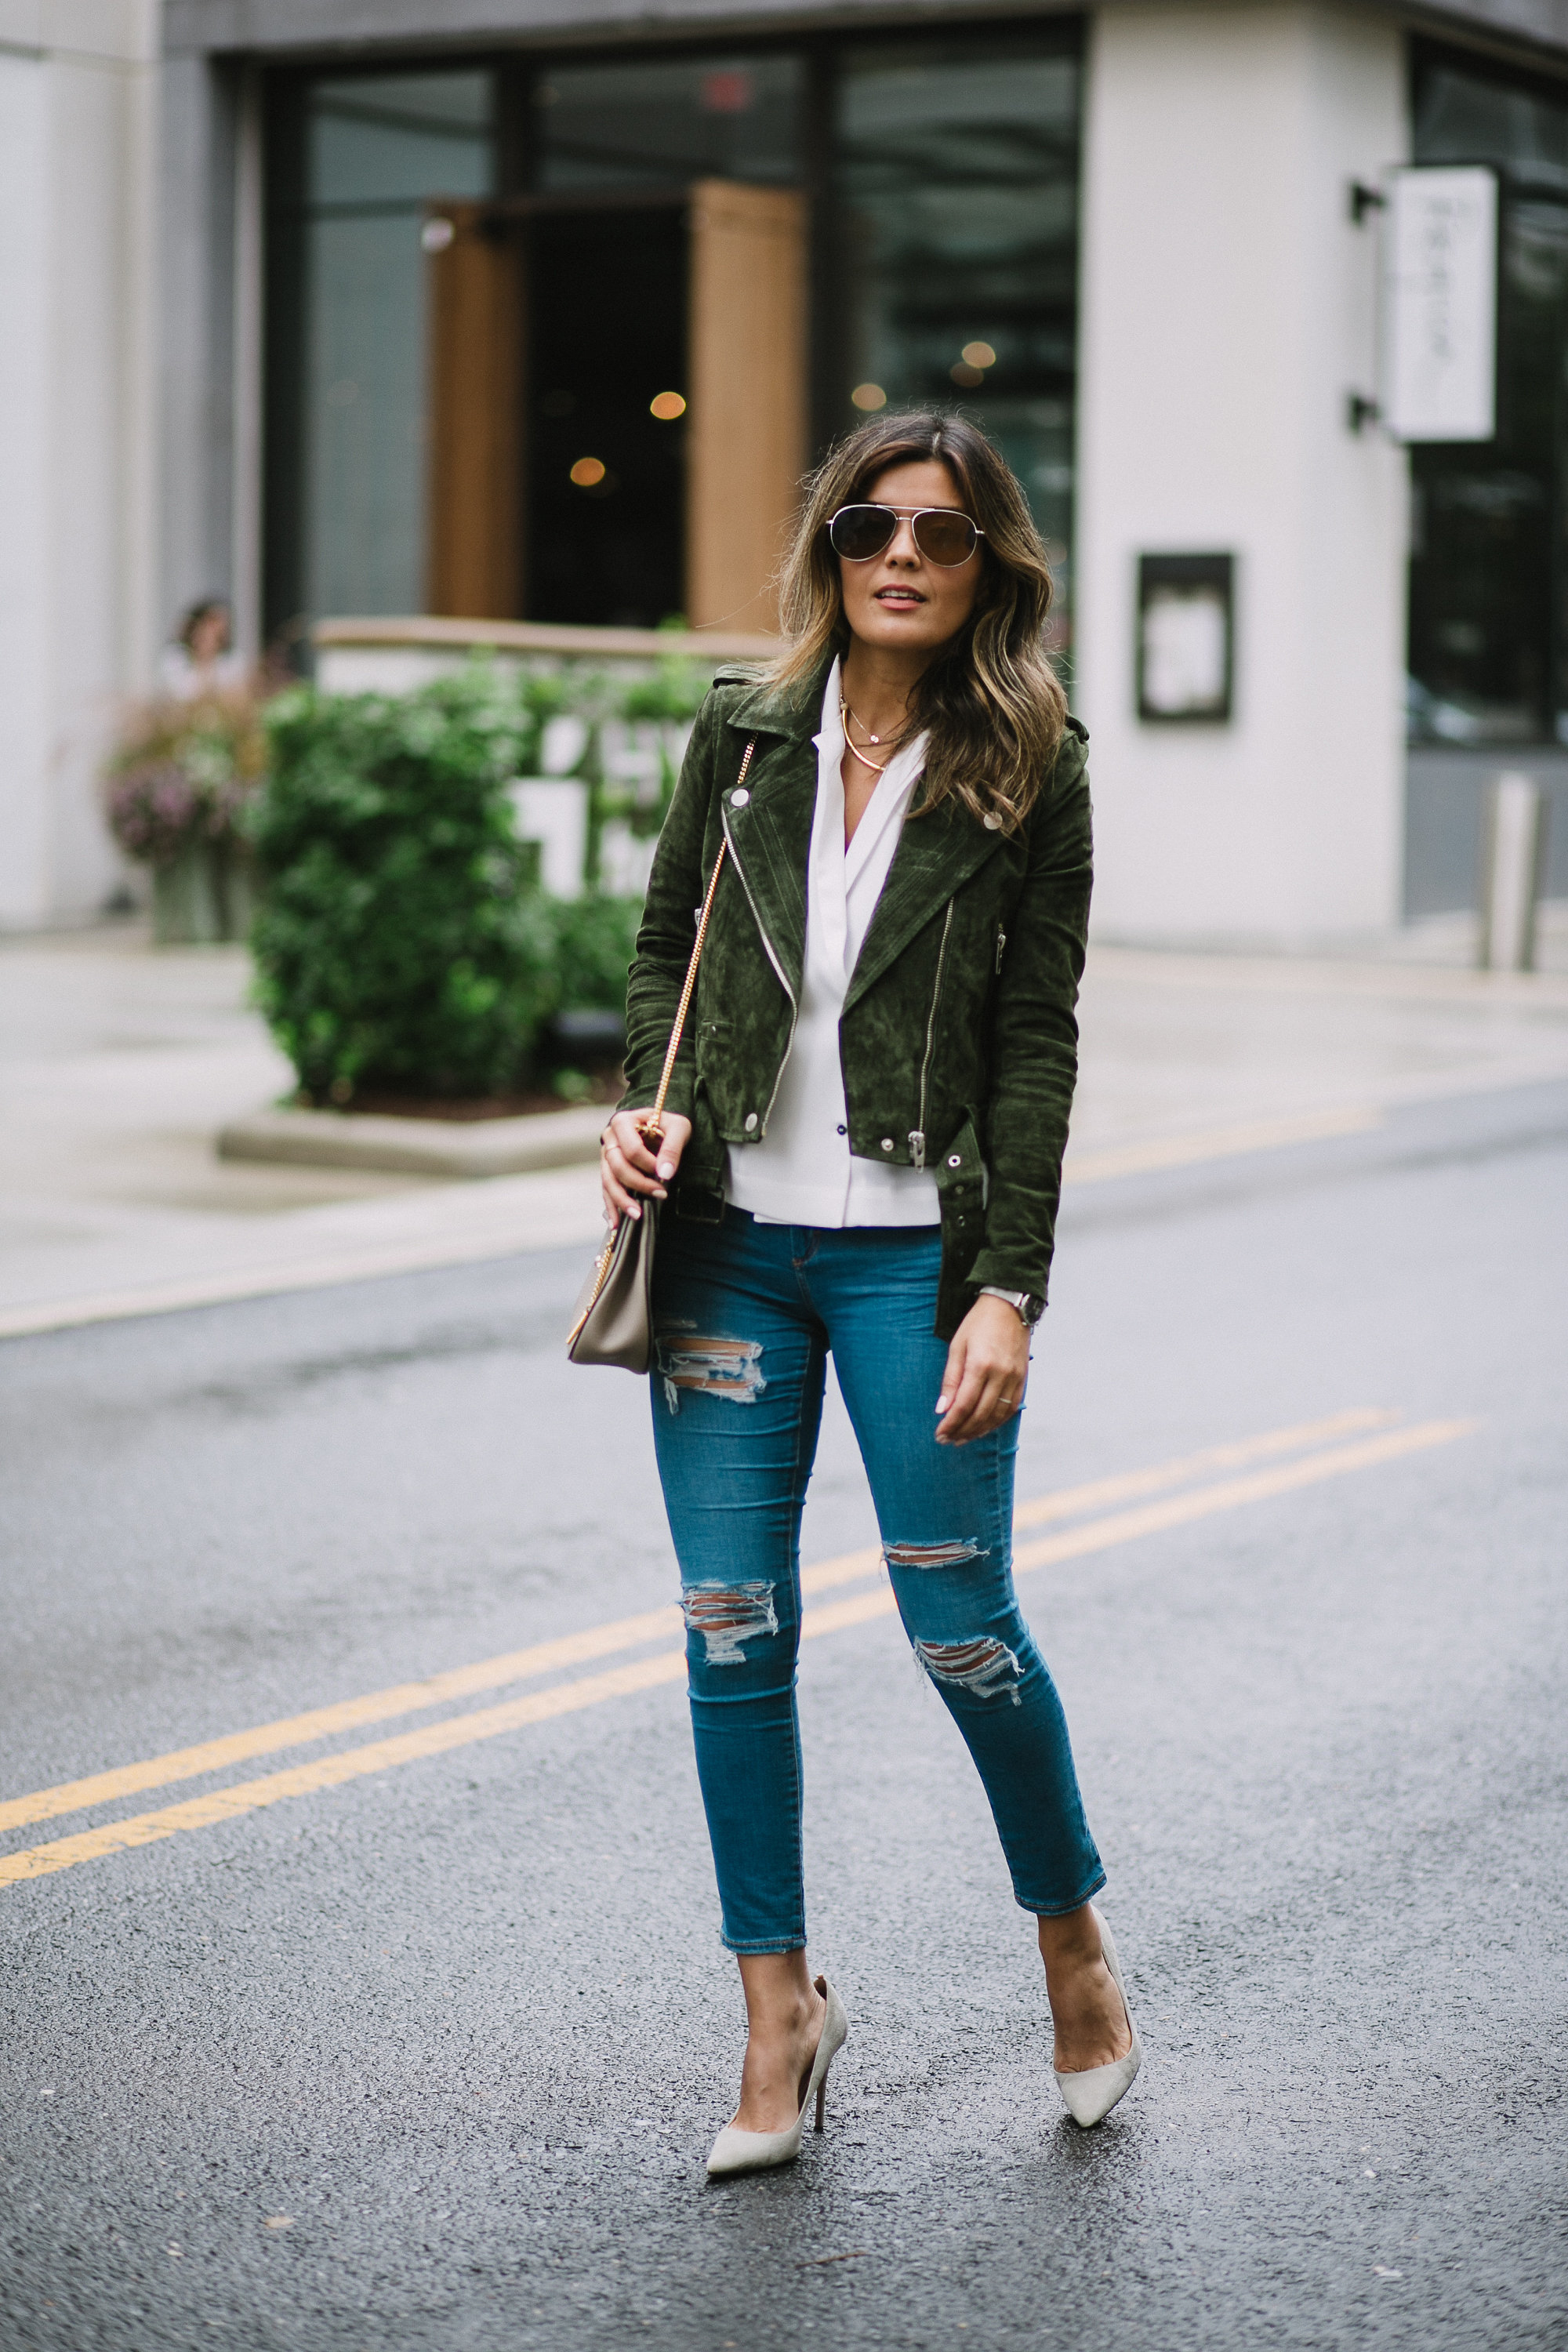 Style MBA wears Nordstrom Suede Moto Jacket from Blank NYC